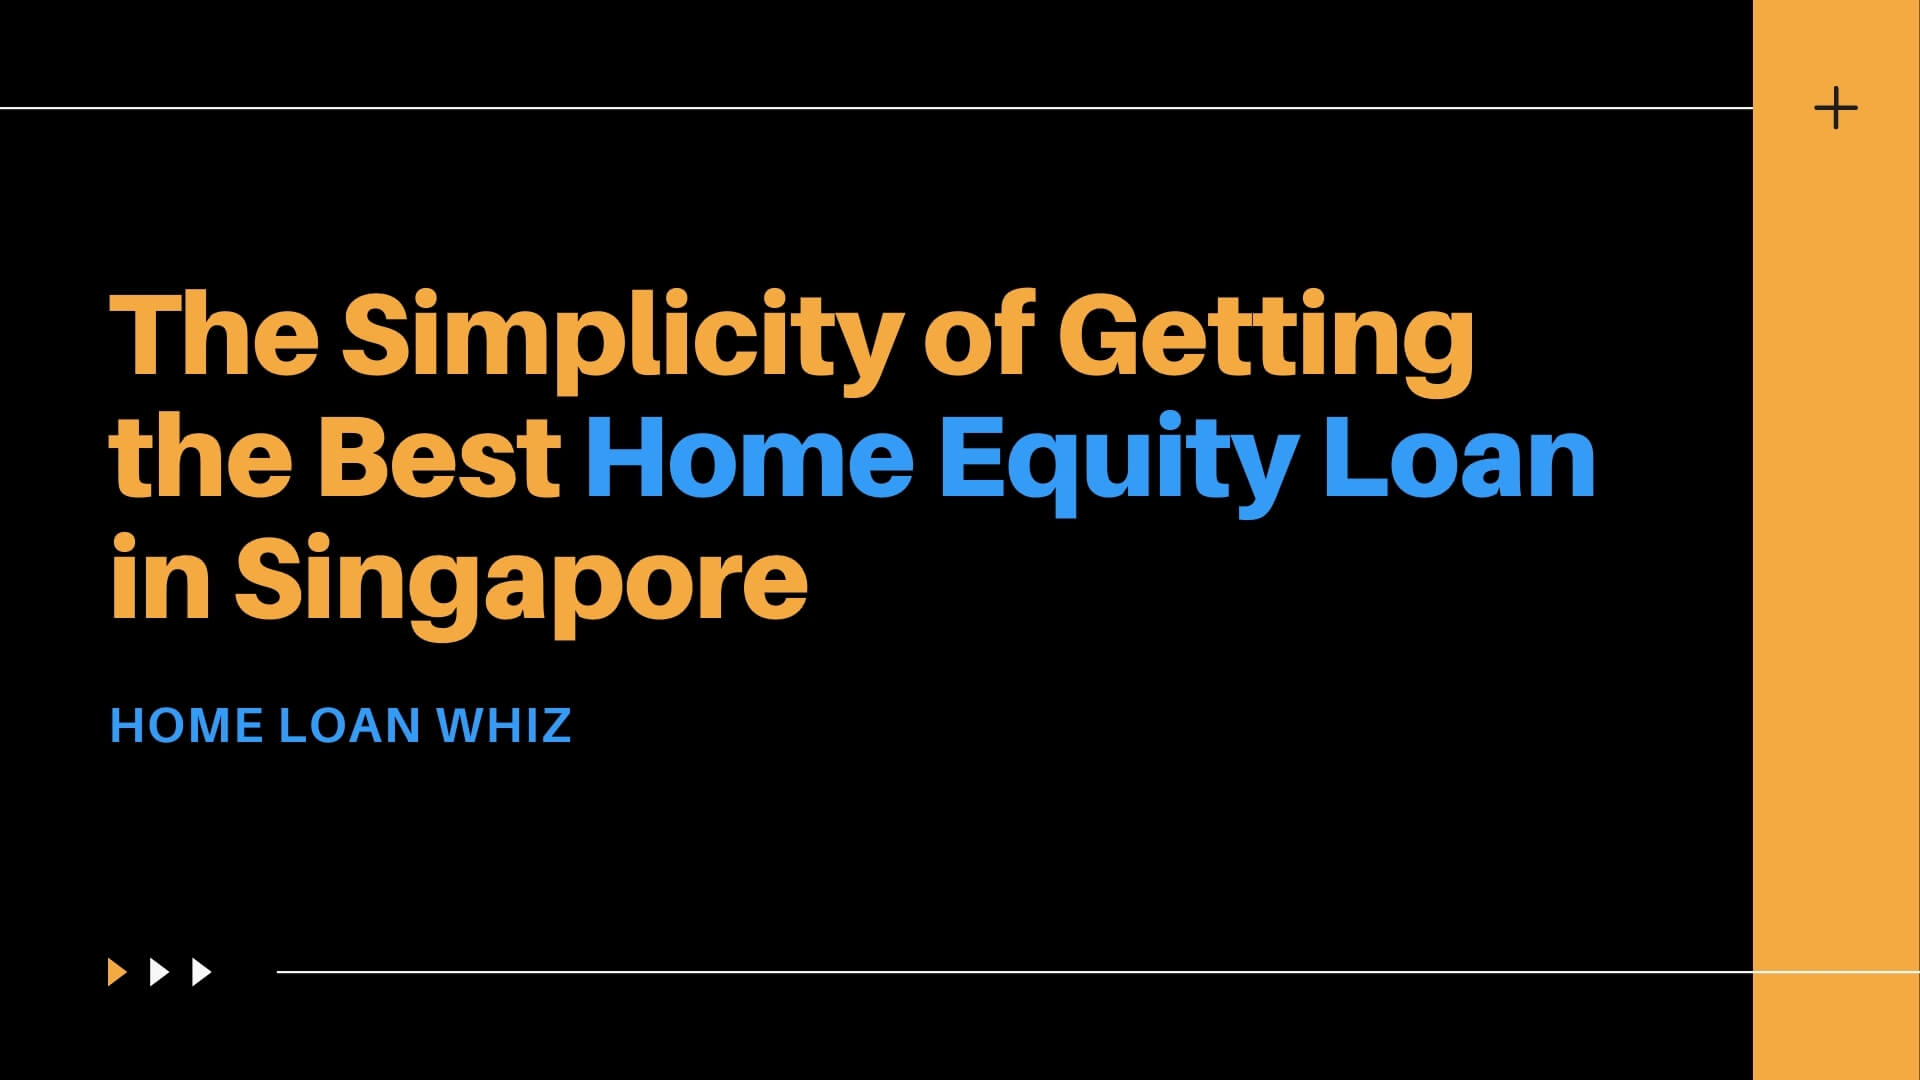 The Simplicity of Getting the Best Home Equity Loan in Singapore